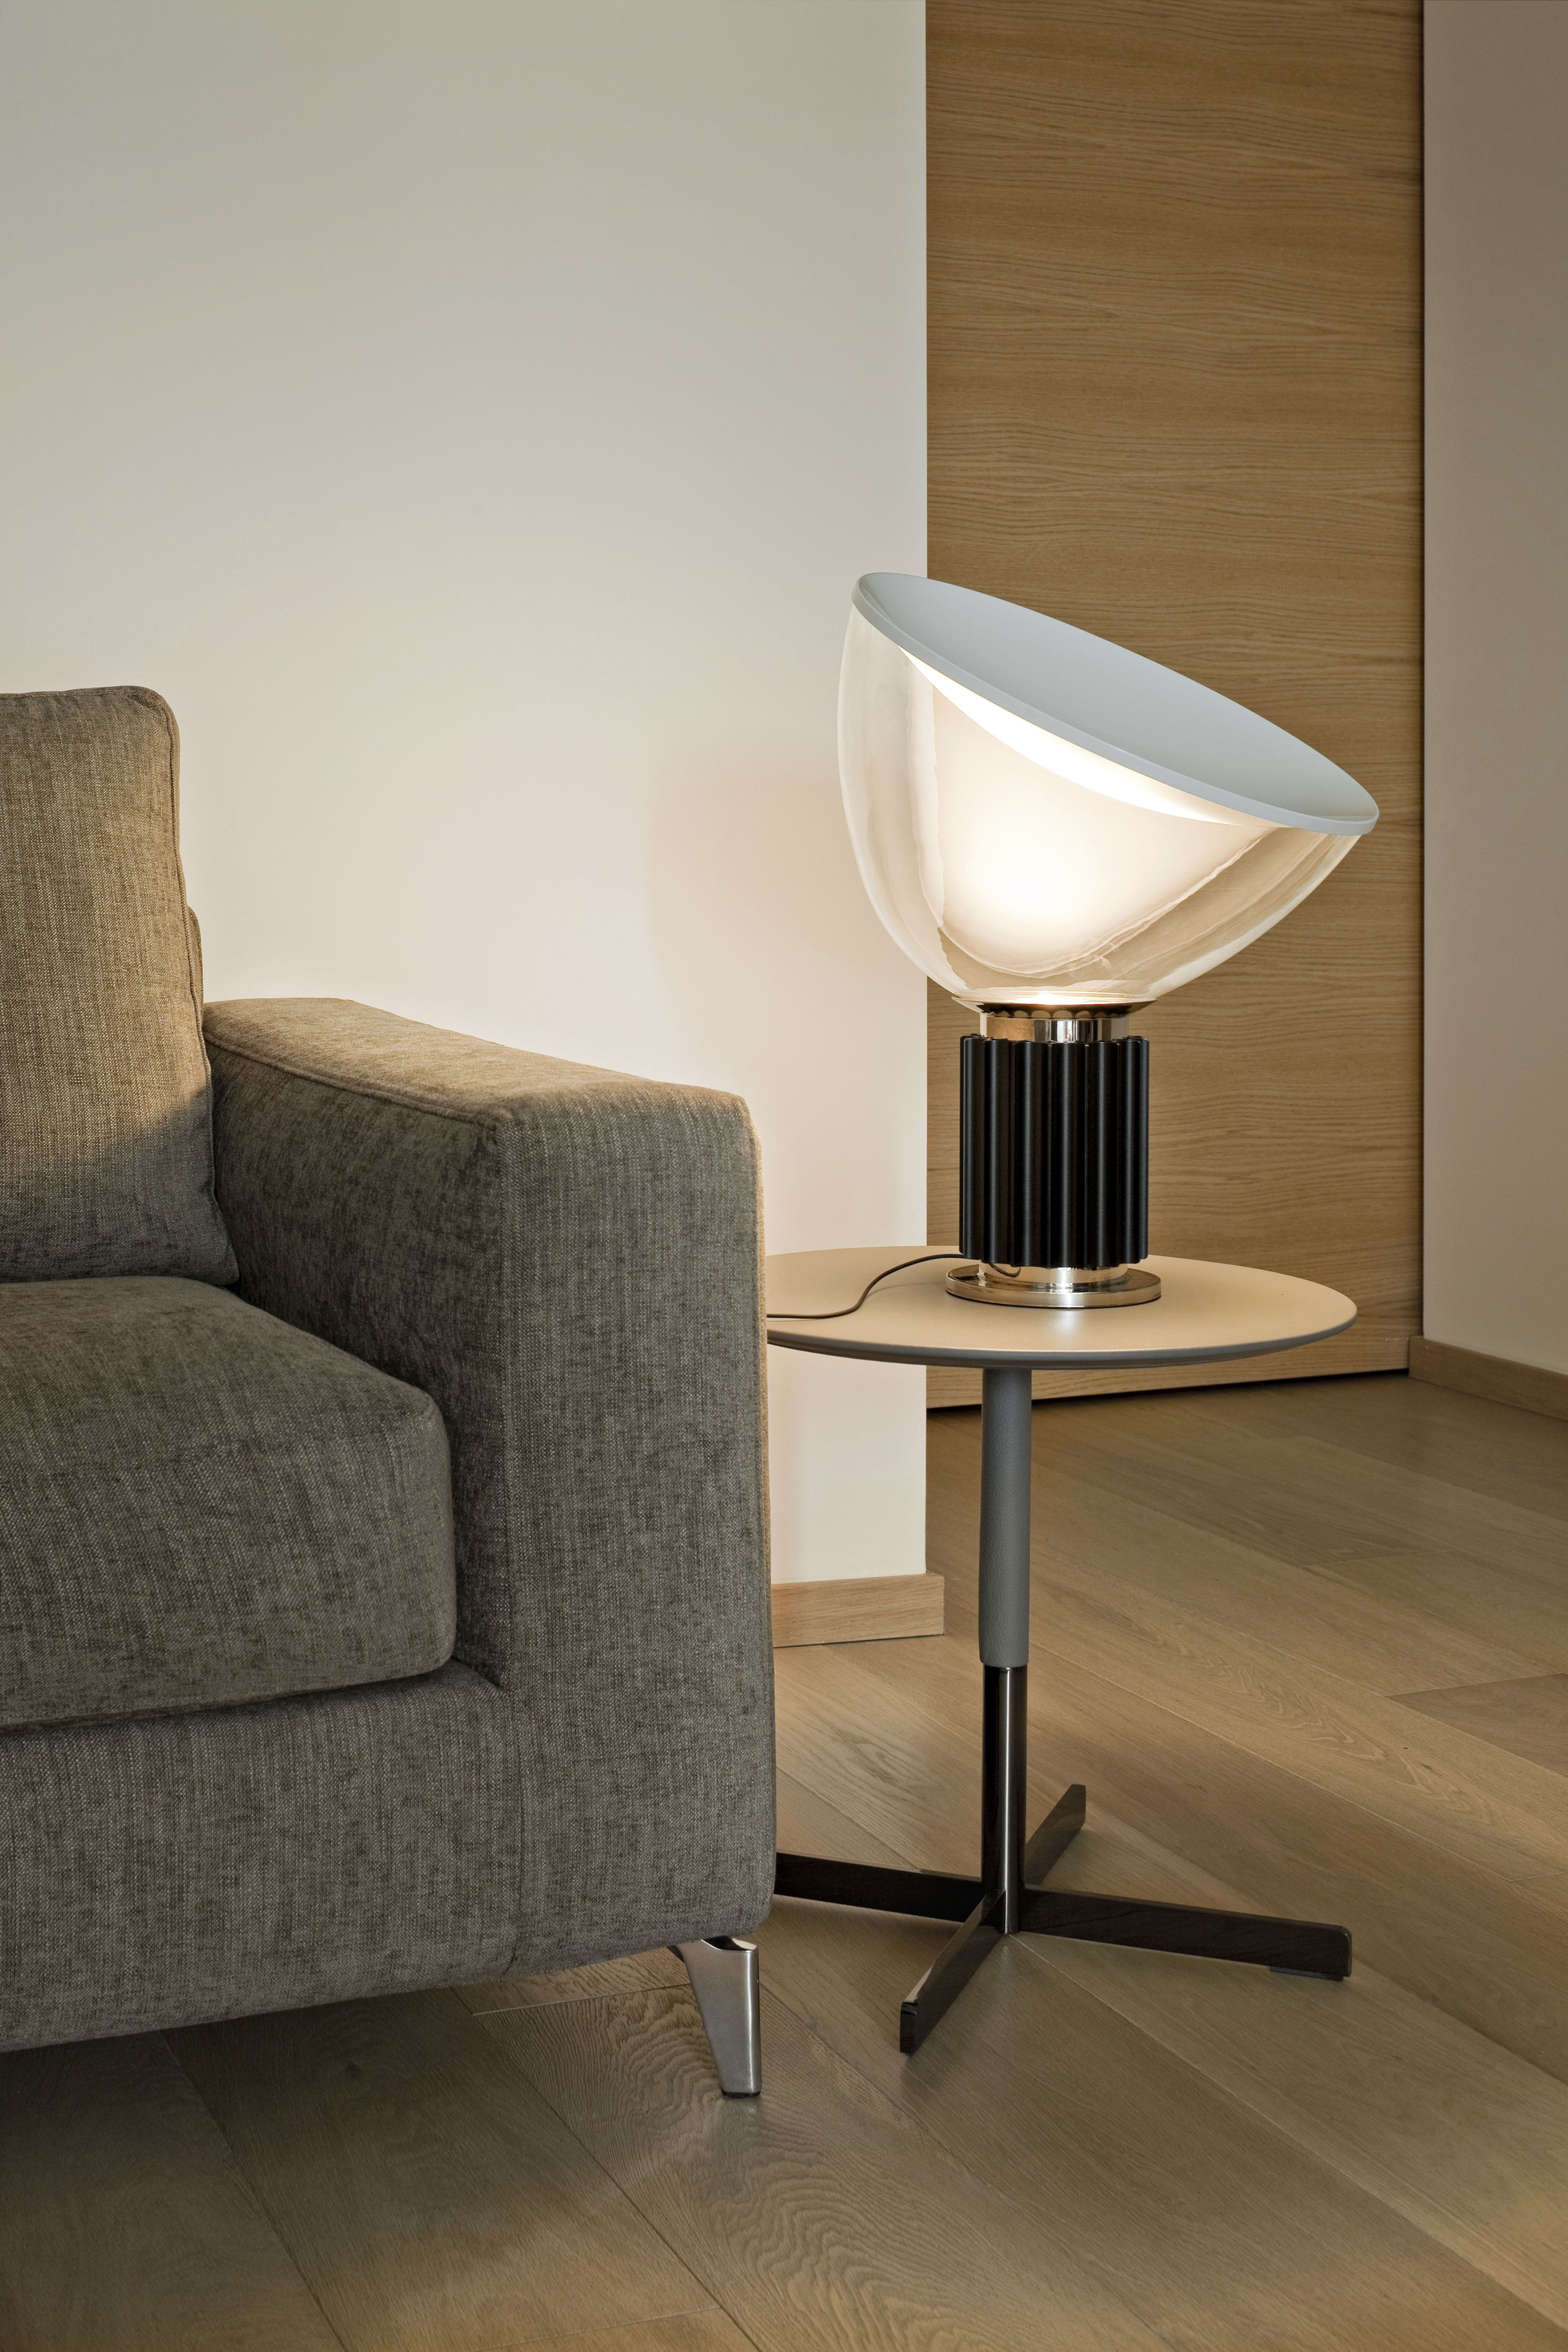 Made In Design Contemporary Furniture Home Decorating And Modern Lighting Lampes De Table Lampe A Poser Table Moderne